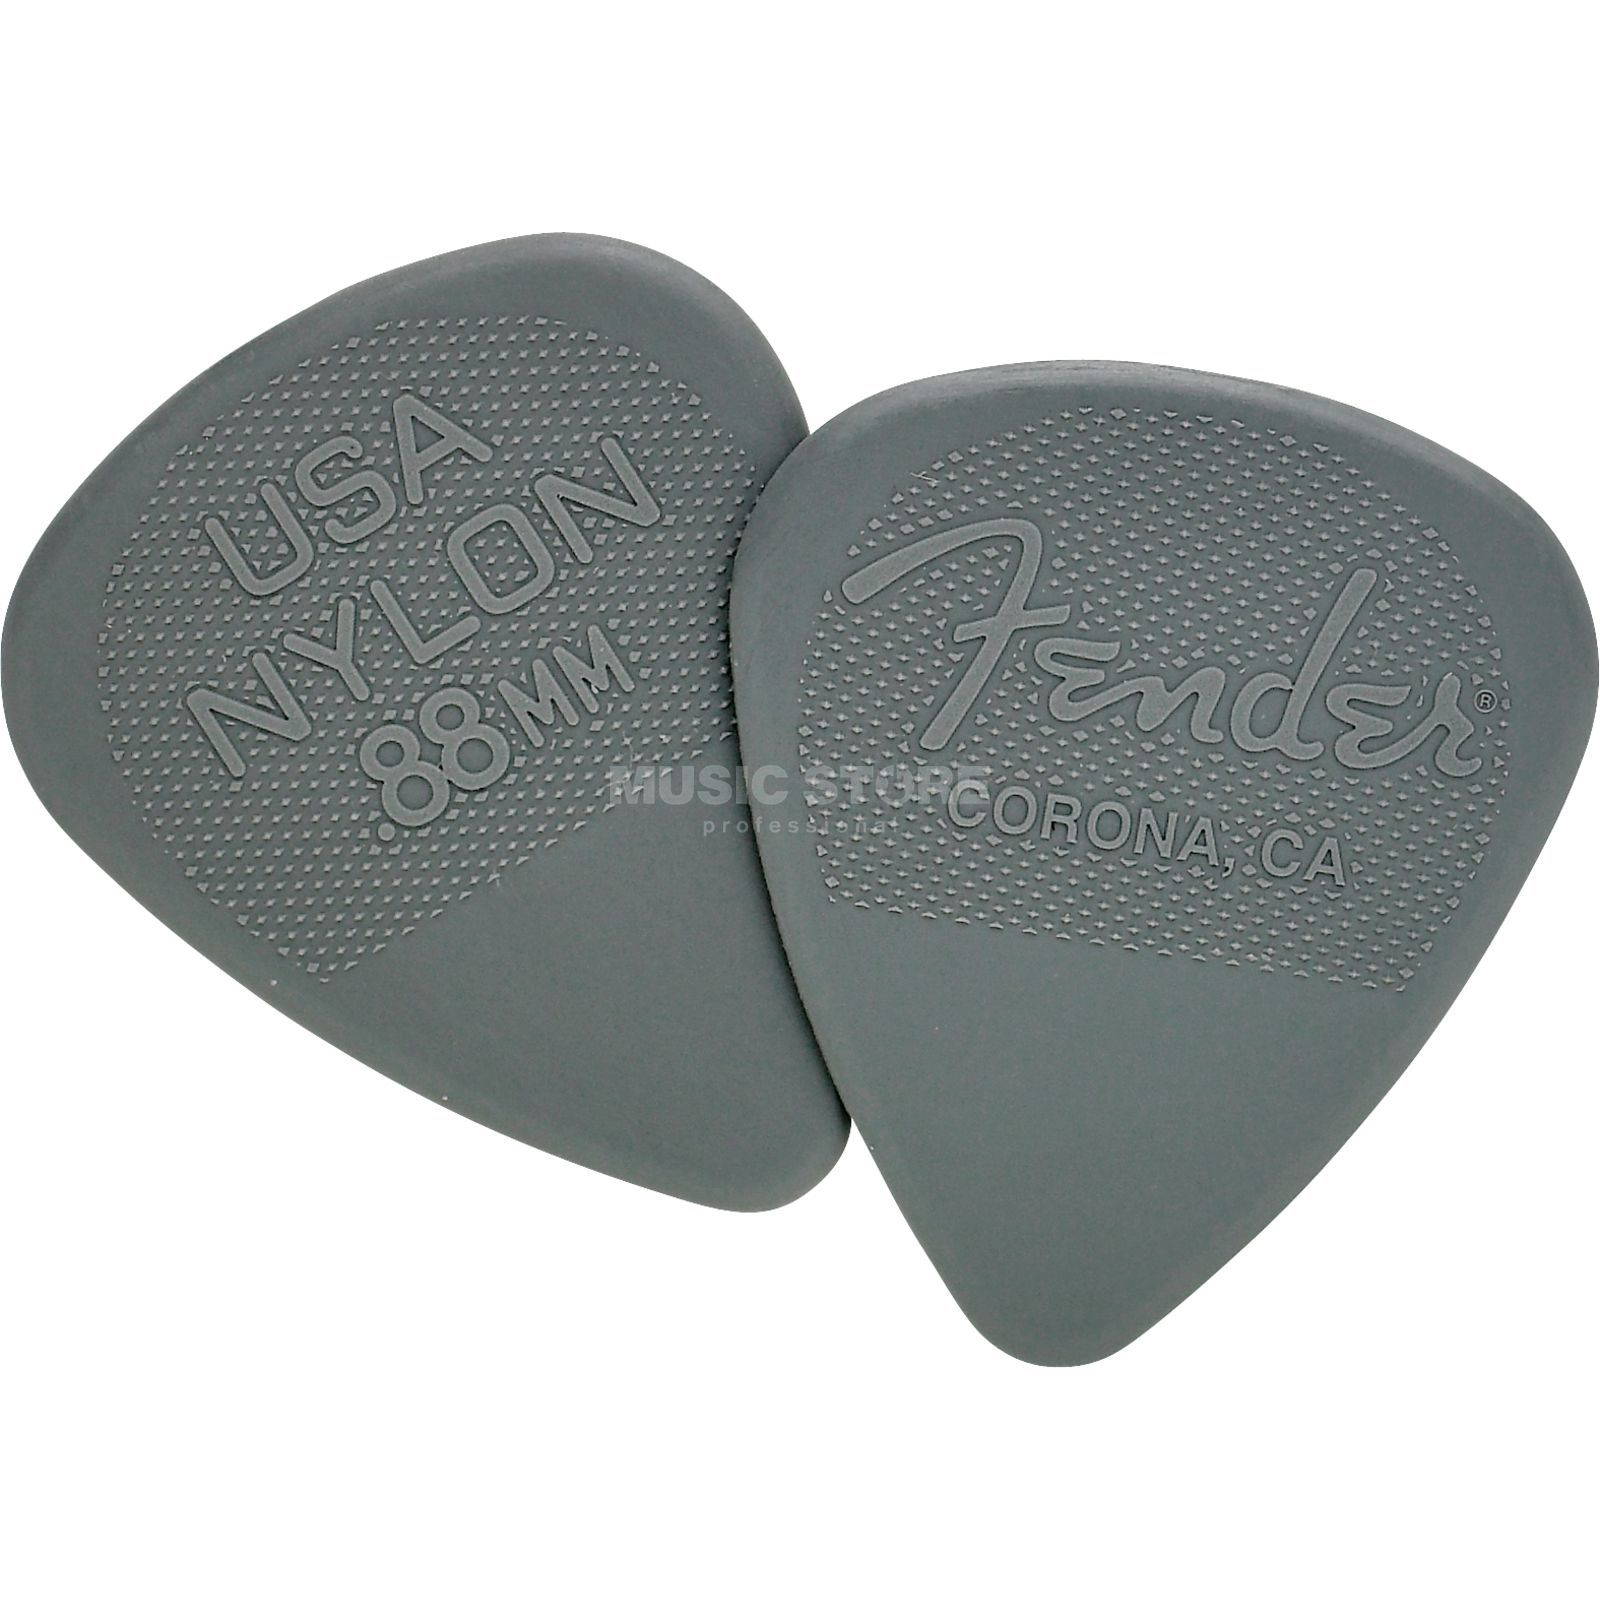 Fender Nylon Picks 72 Set 0.88  Produktbillede